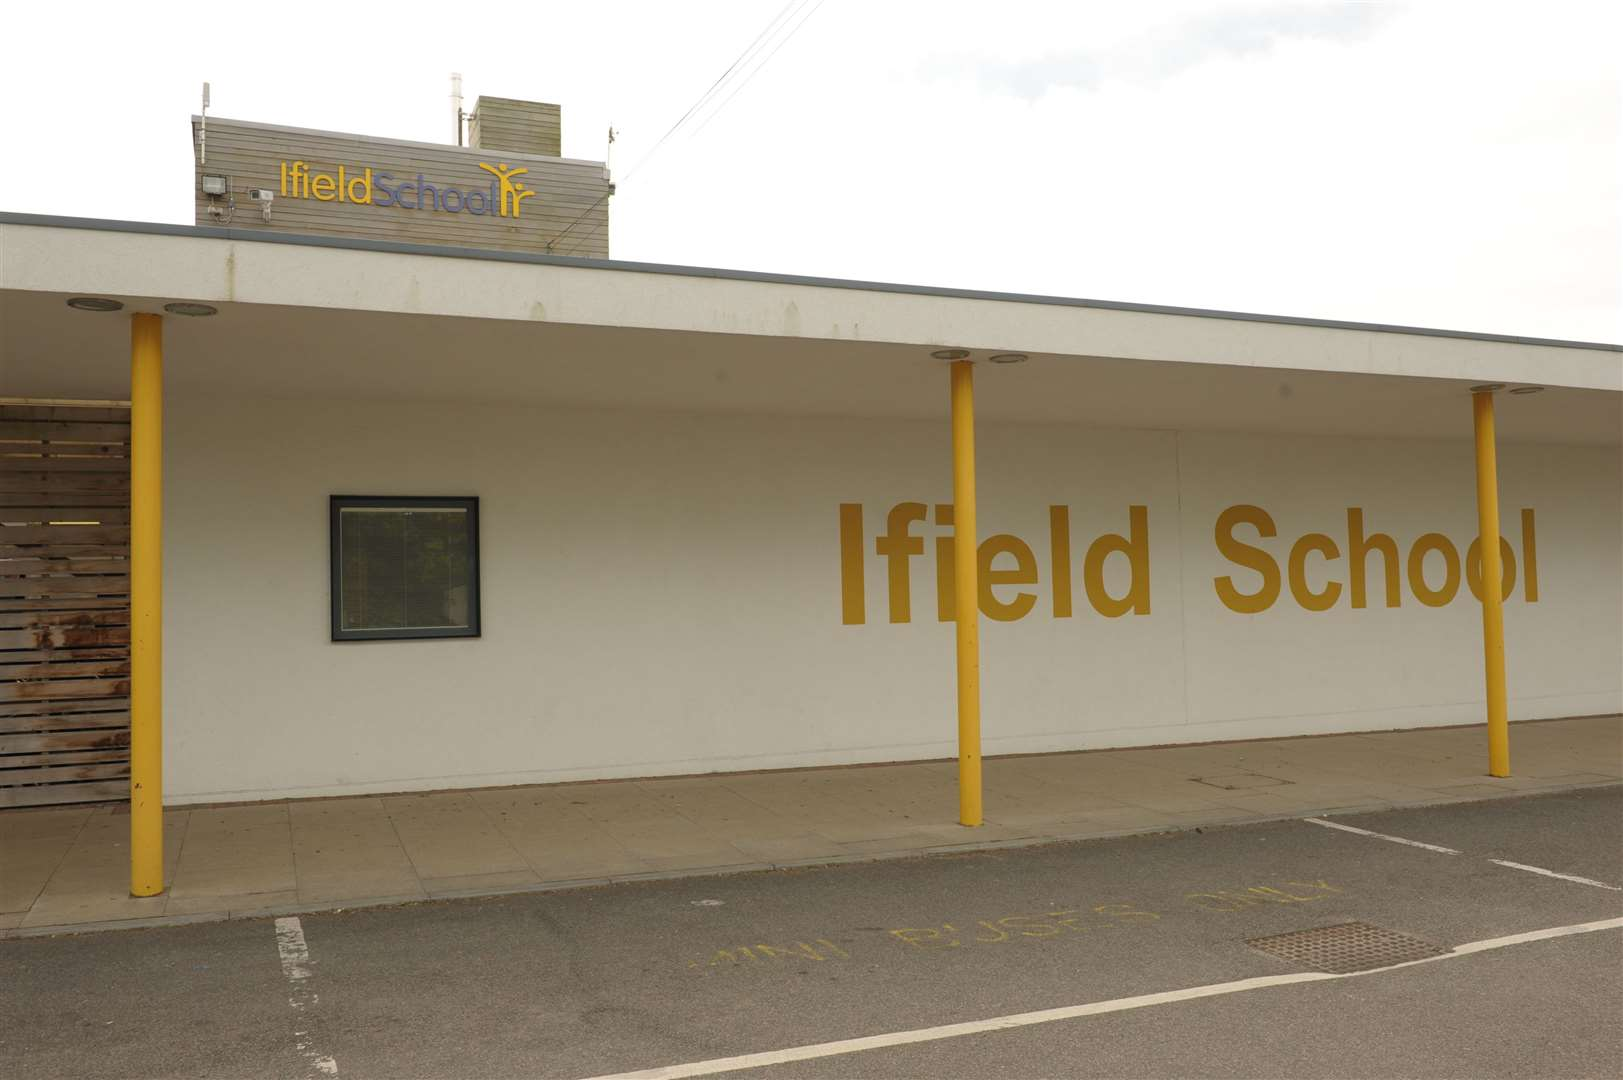 Ifield School caters for nearly 250 pupils but had been open only for a proportion of that number